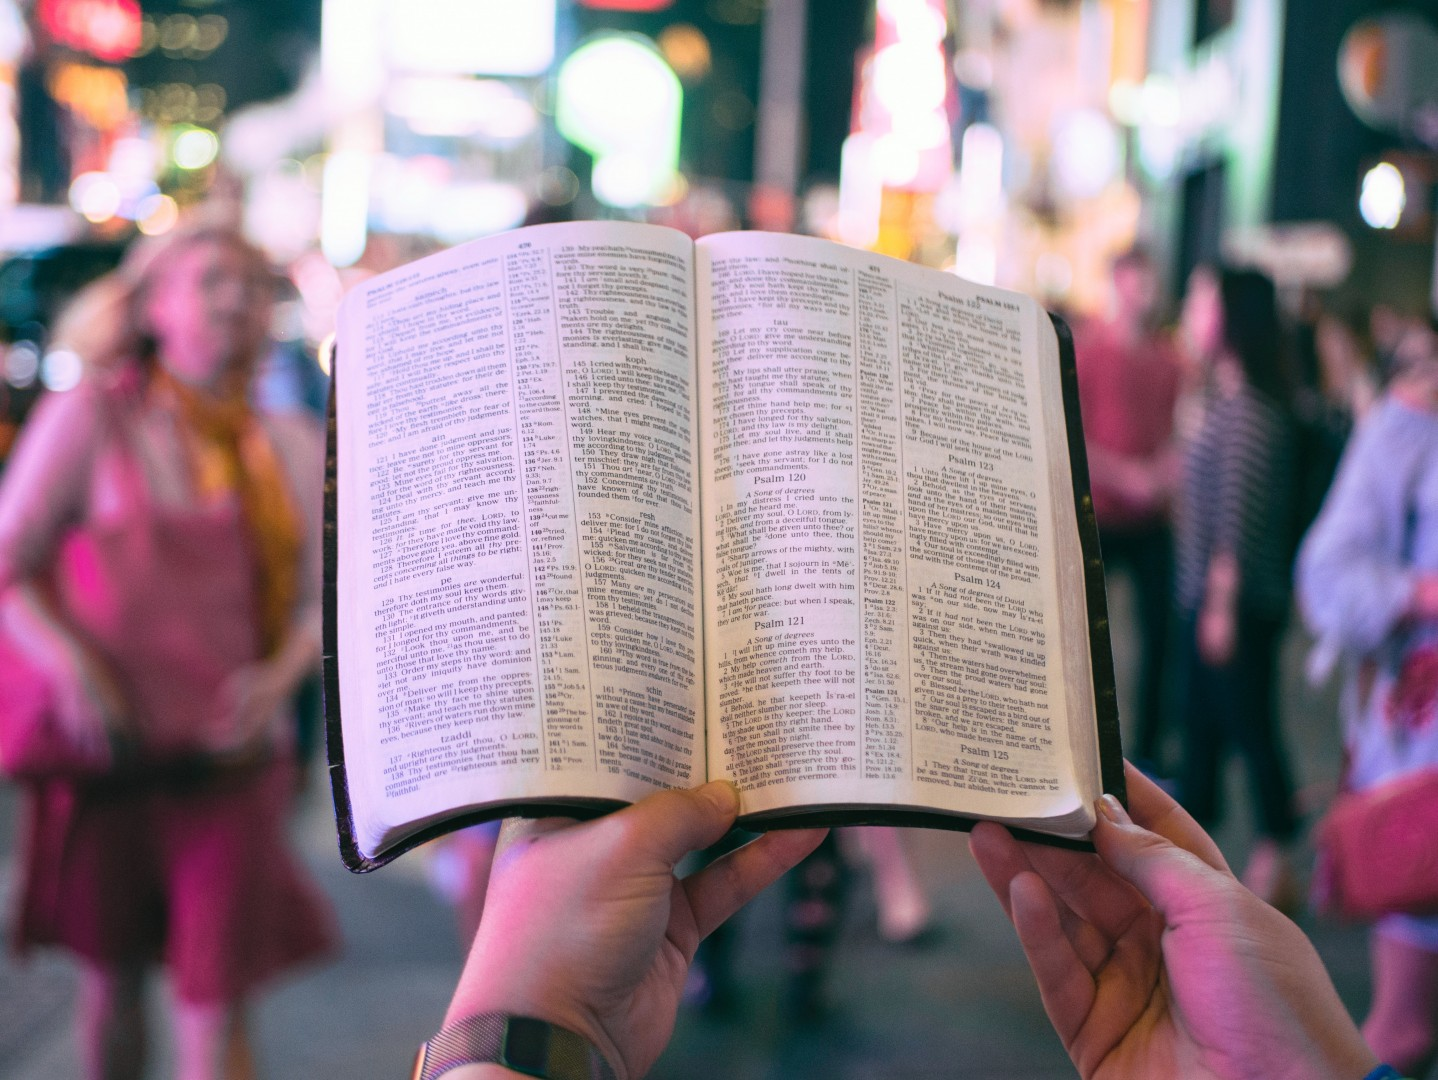 holding bible in crowd